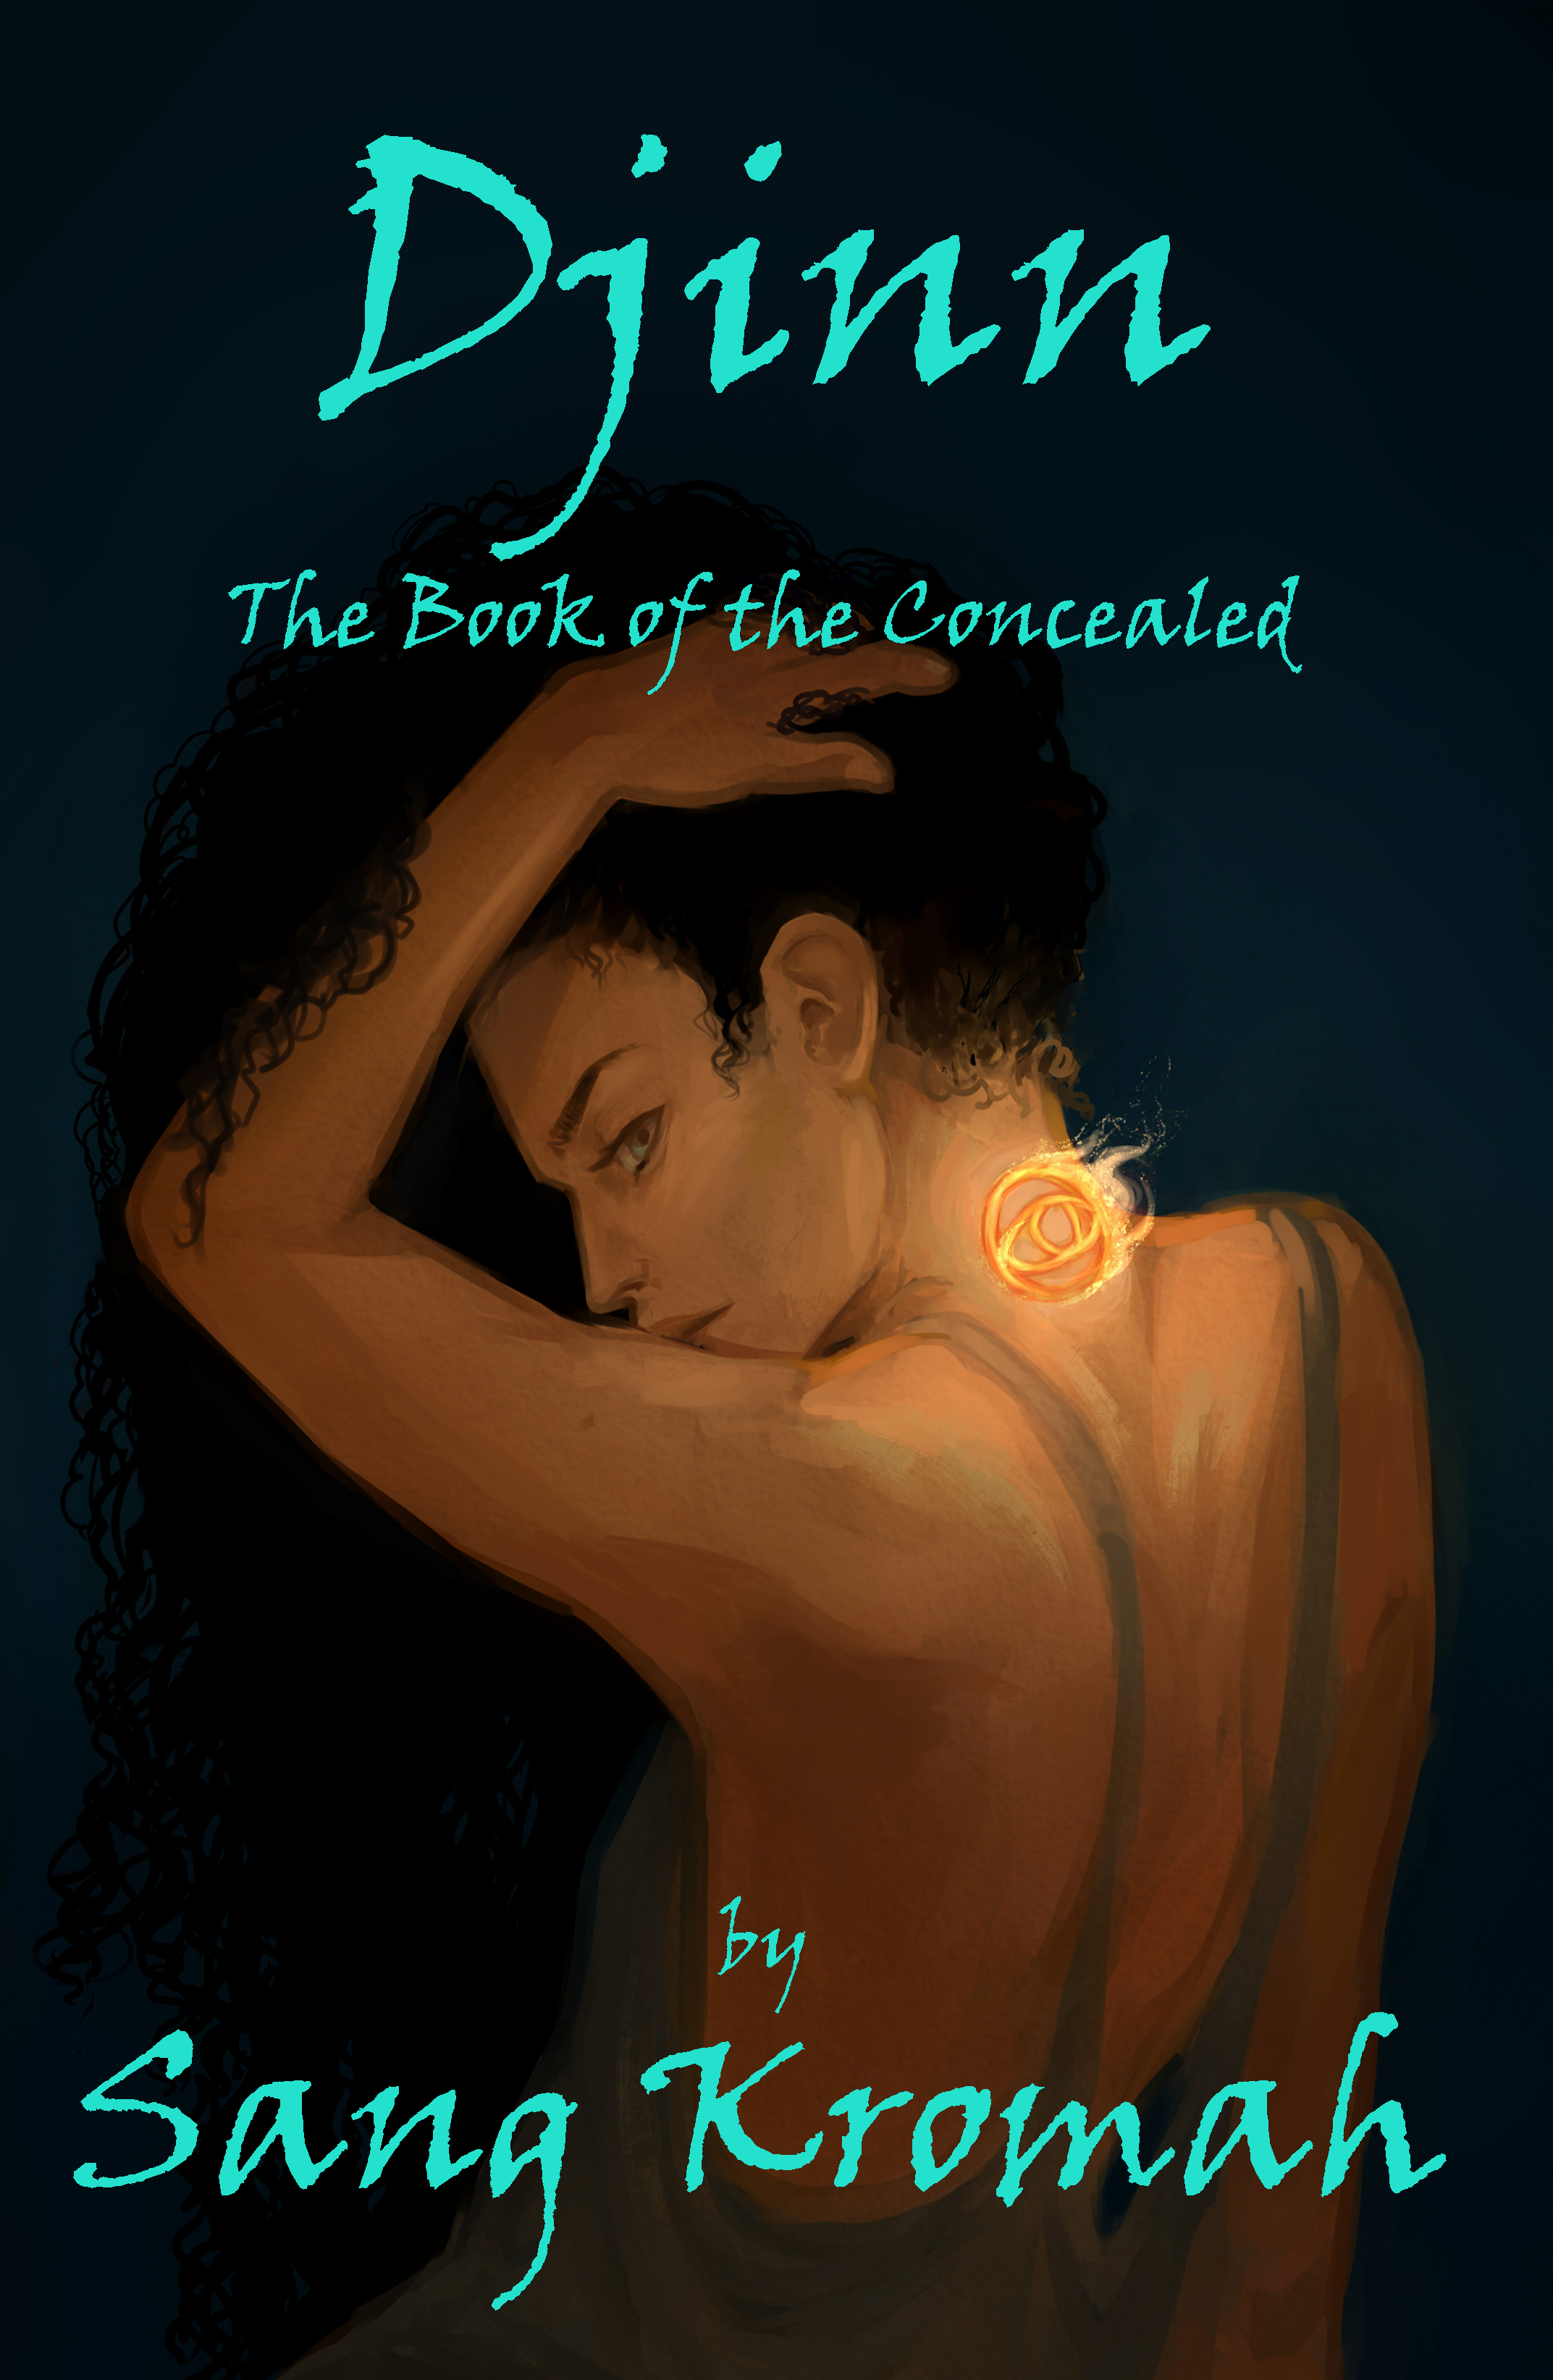 Djinn ebook Cover edit 1.jpg